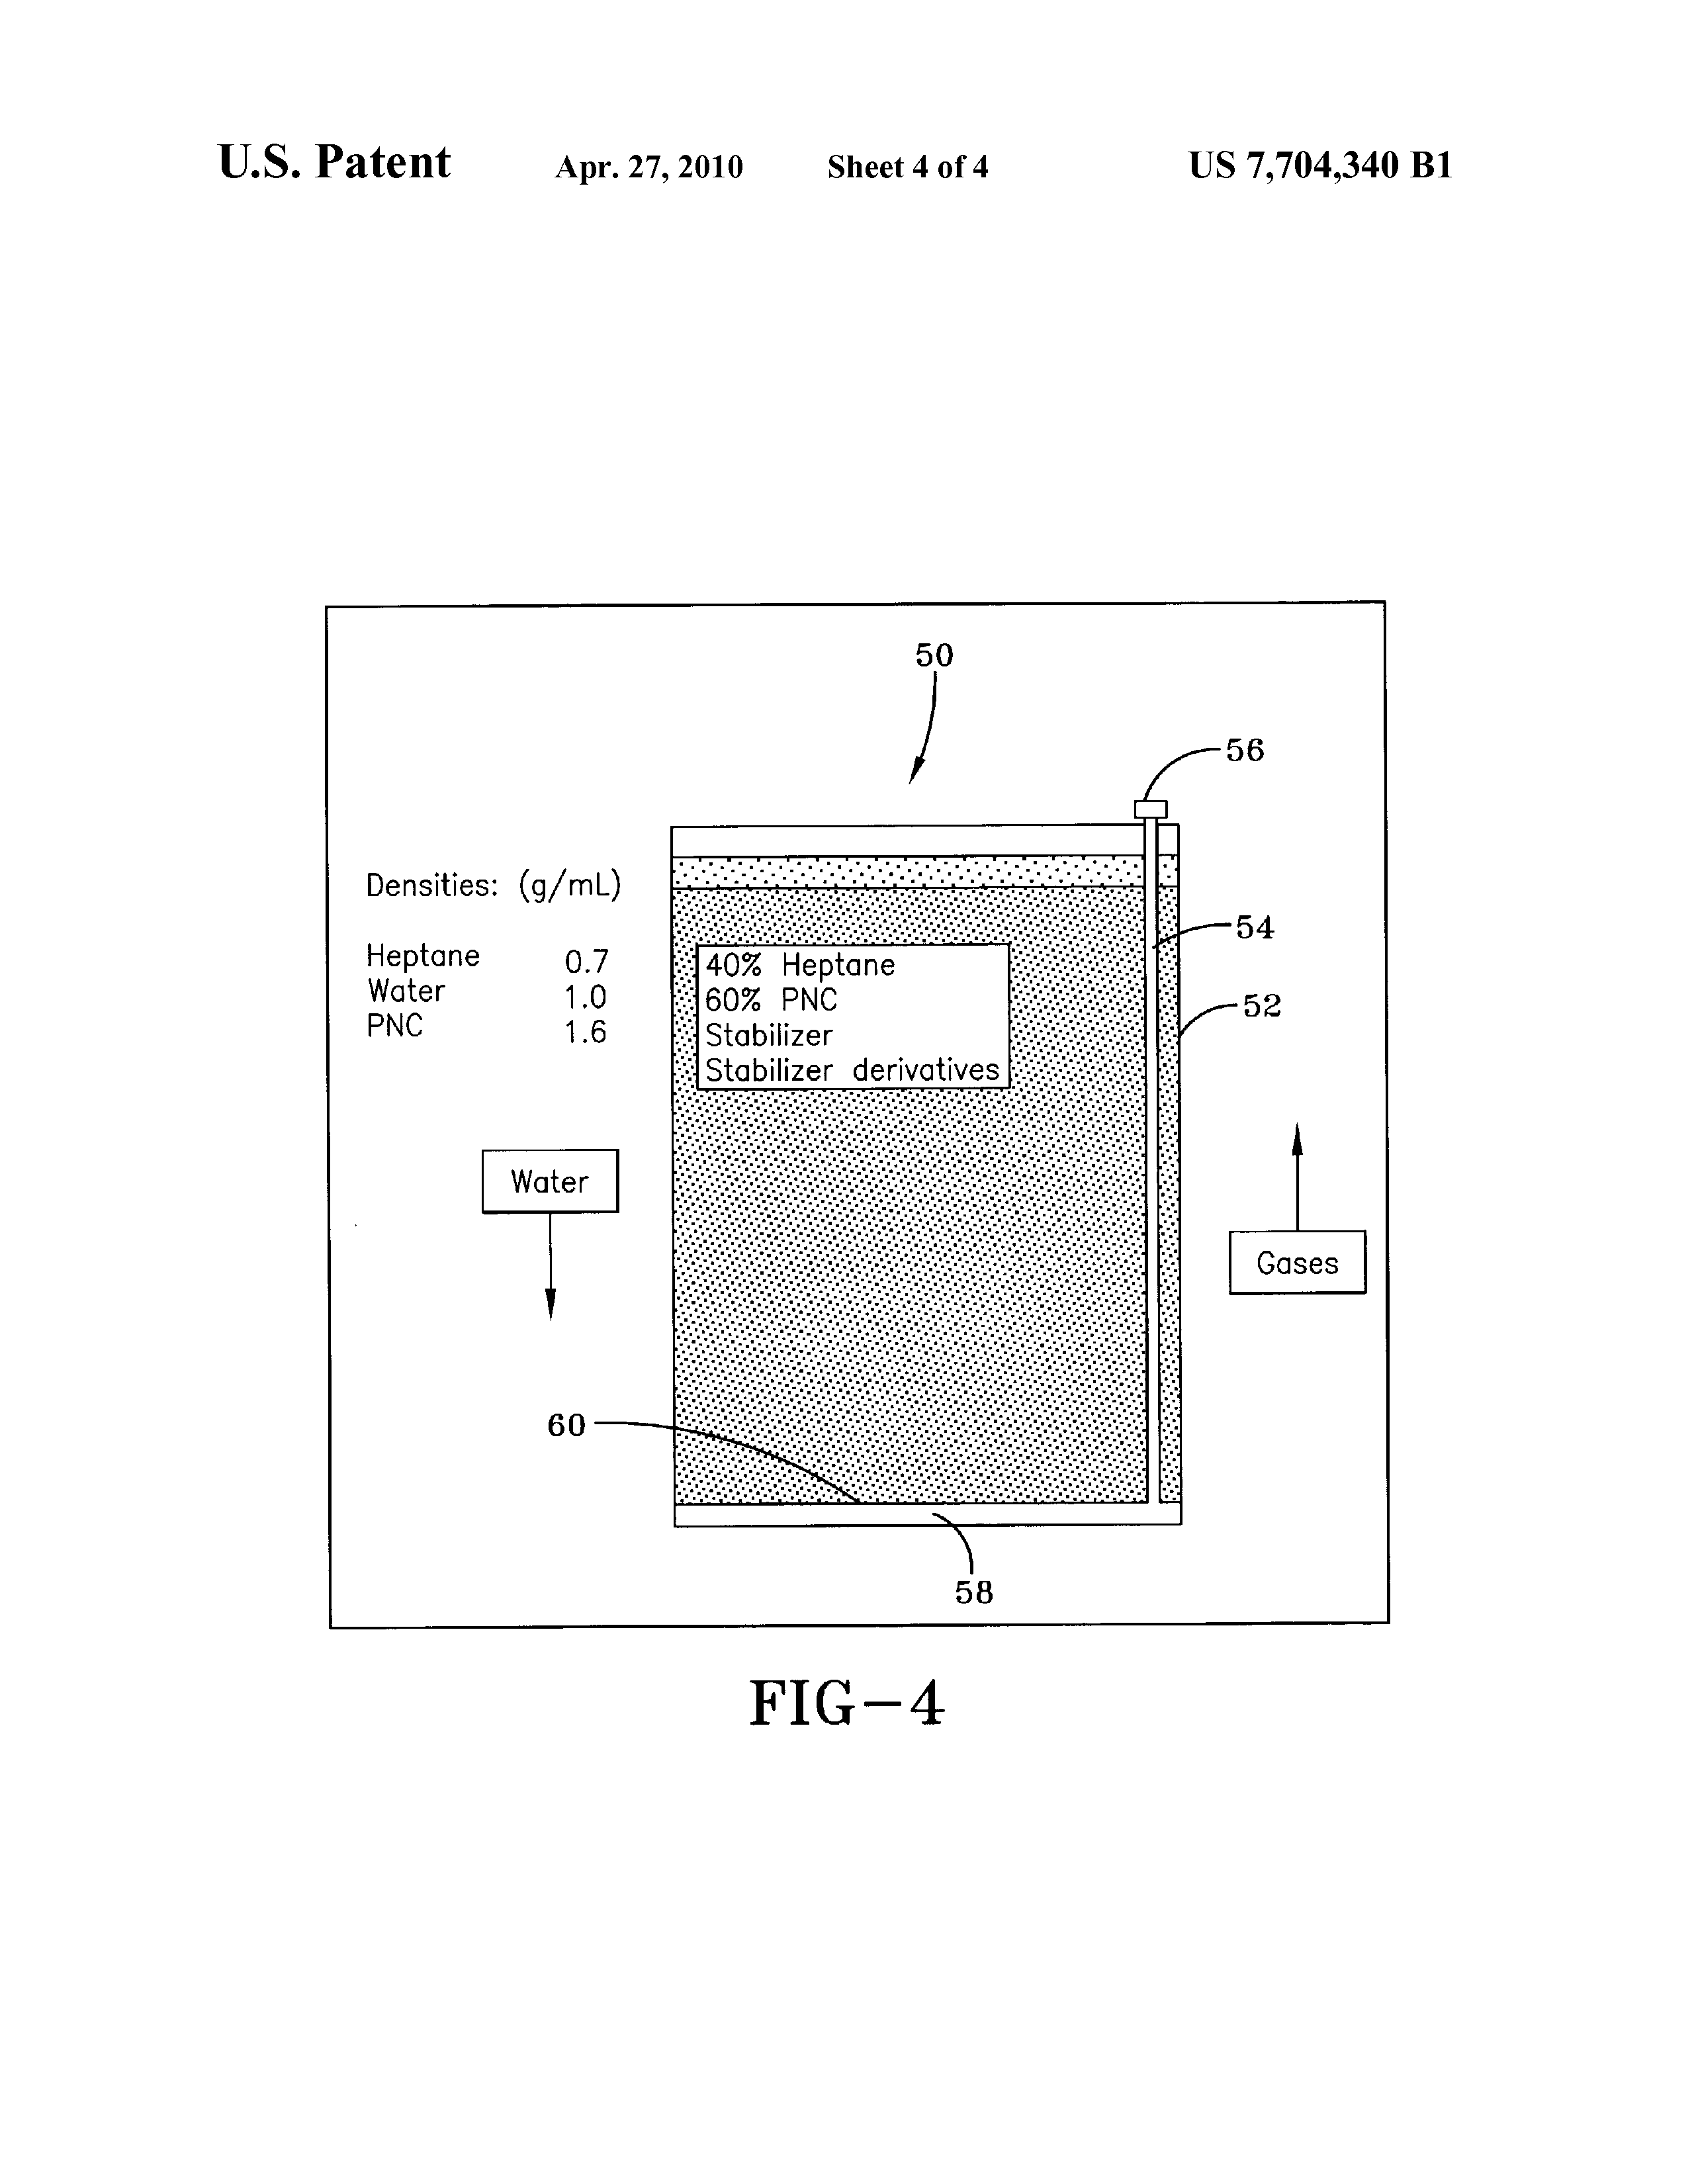 US 7704340 B1 - Pelletized Nitrocellulose (pnc) Manufacture And Long